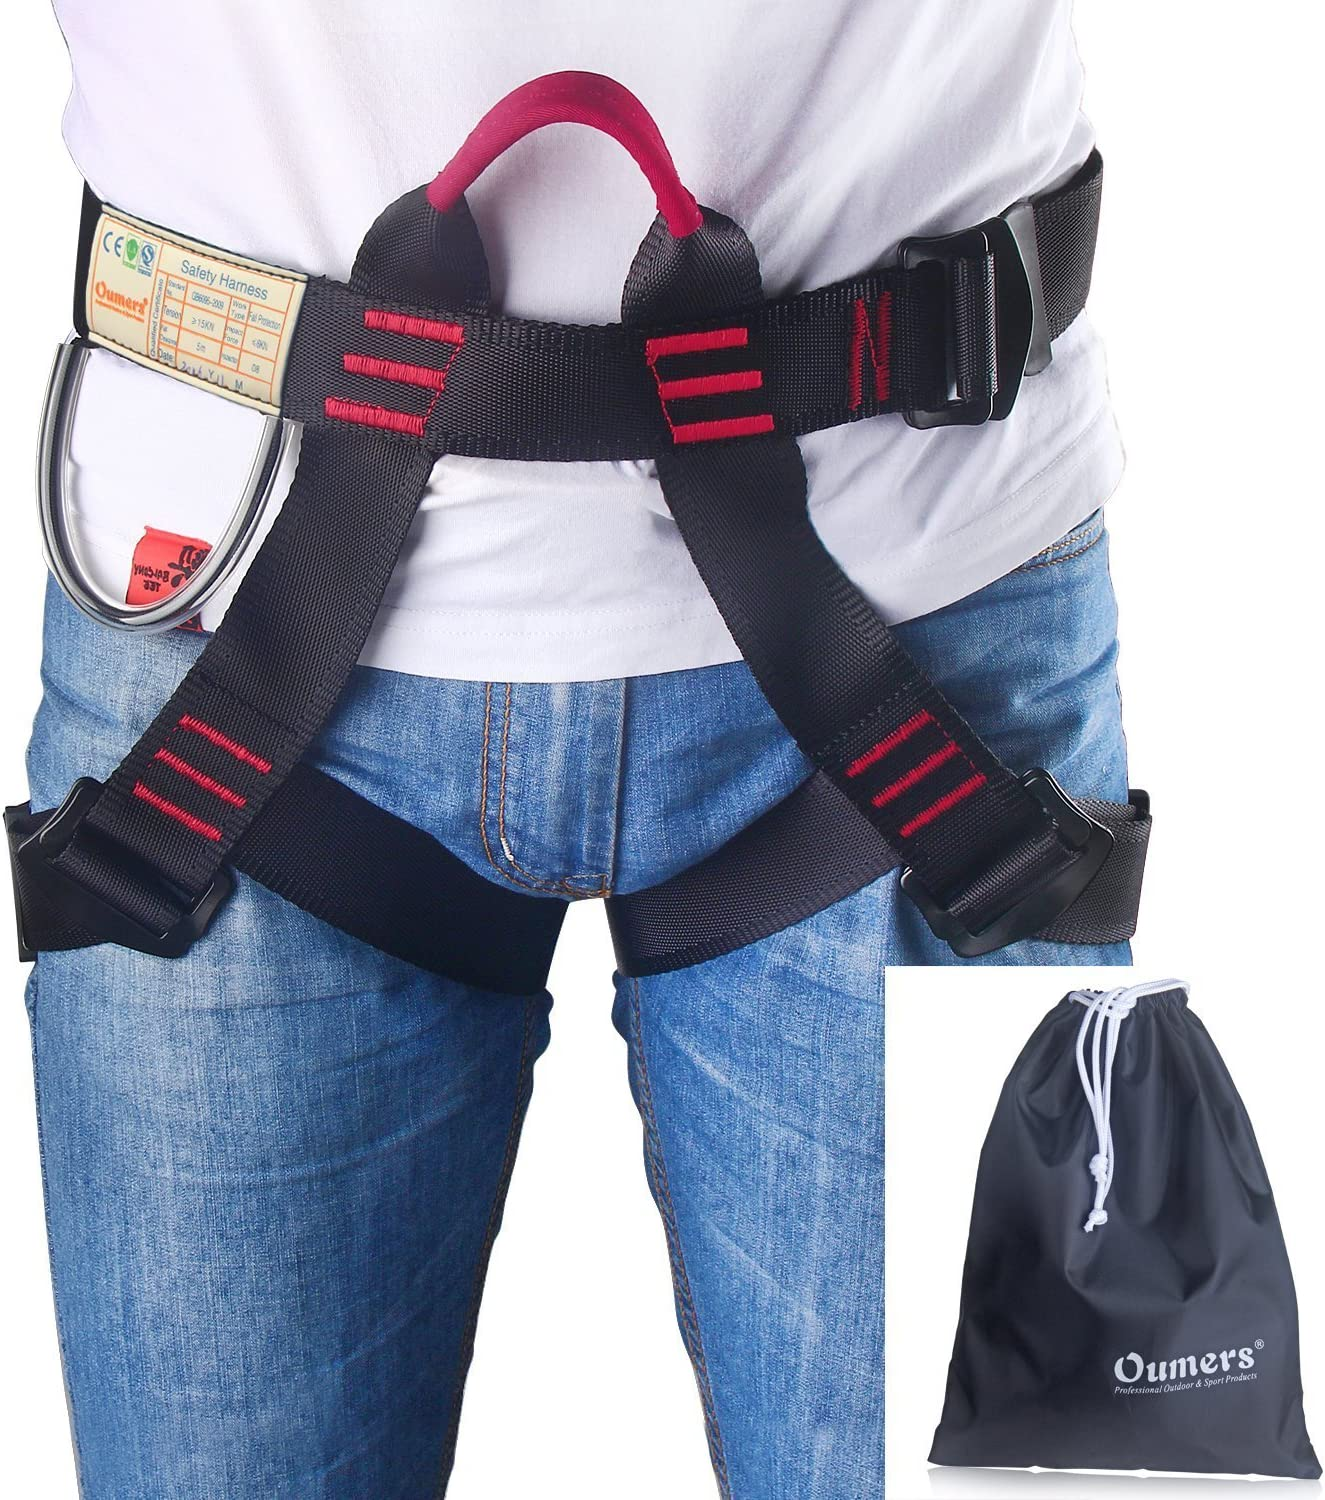 Oumers-Climbing-Harness